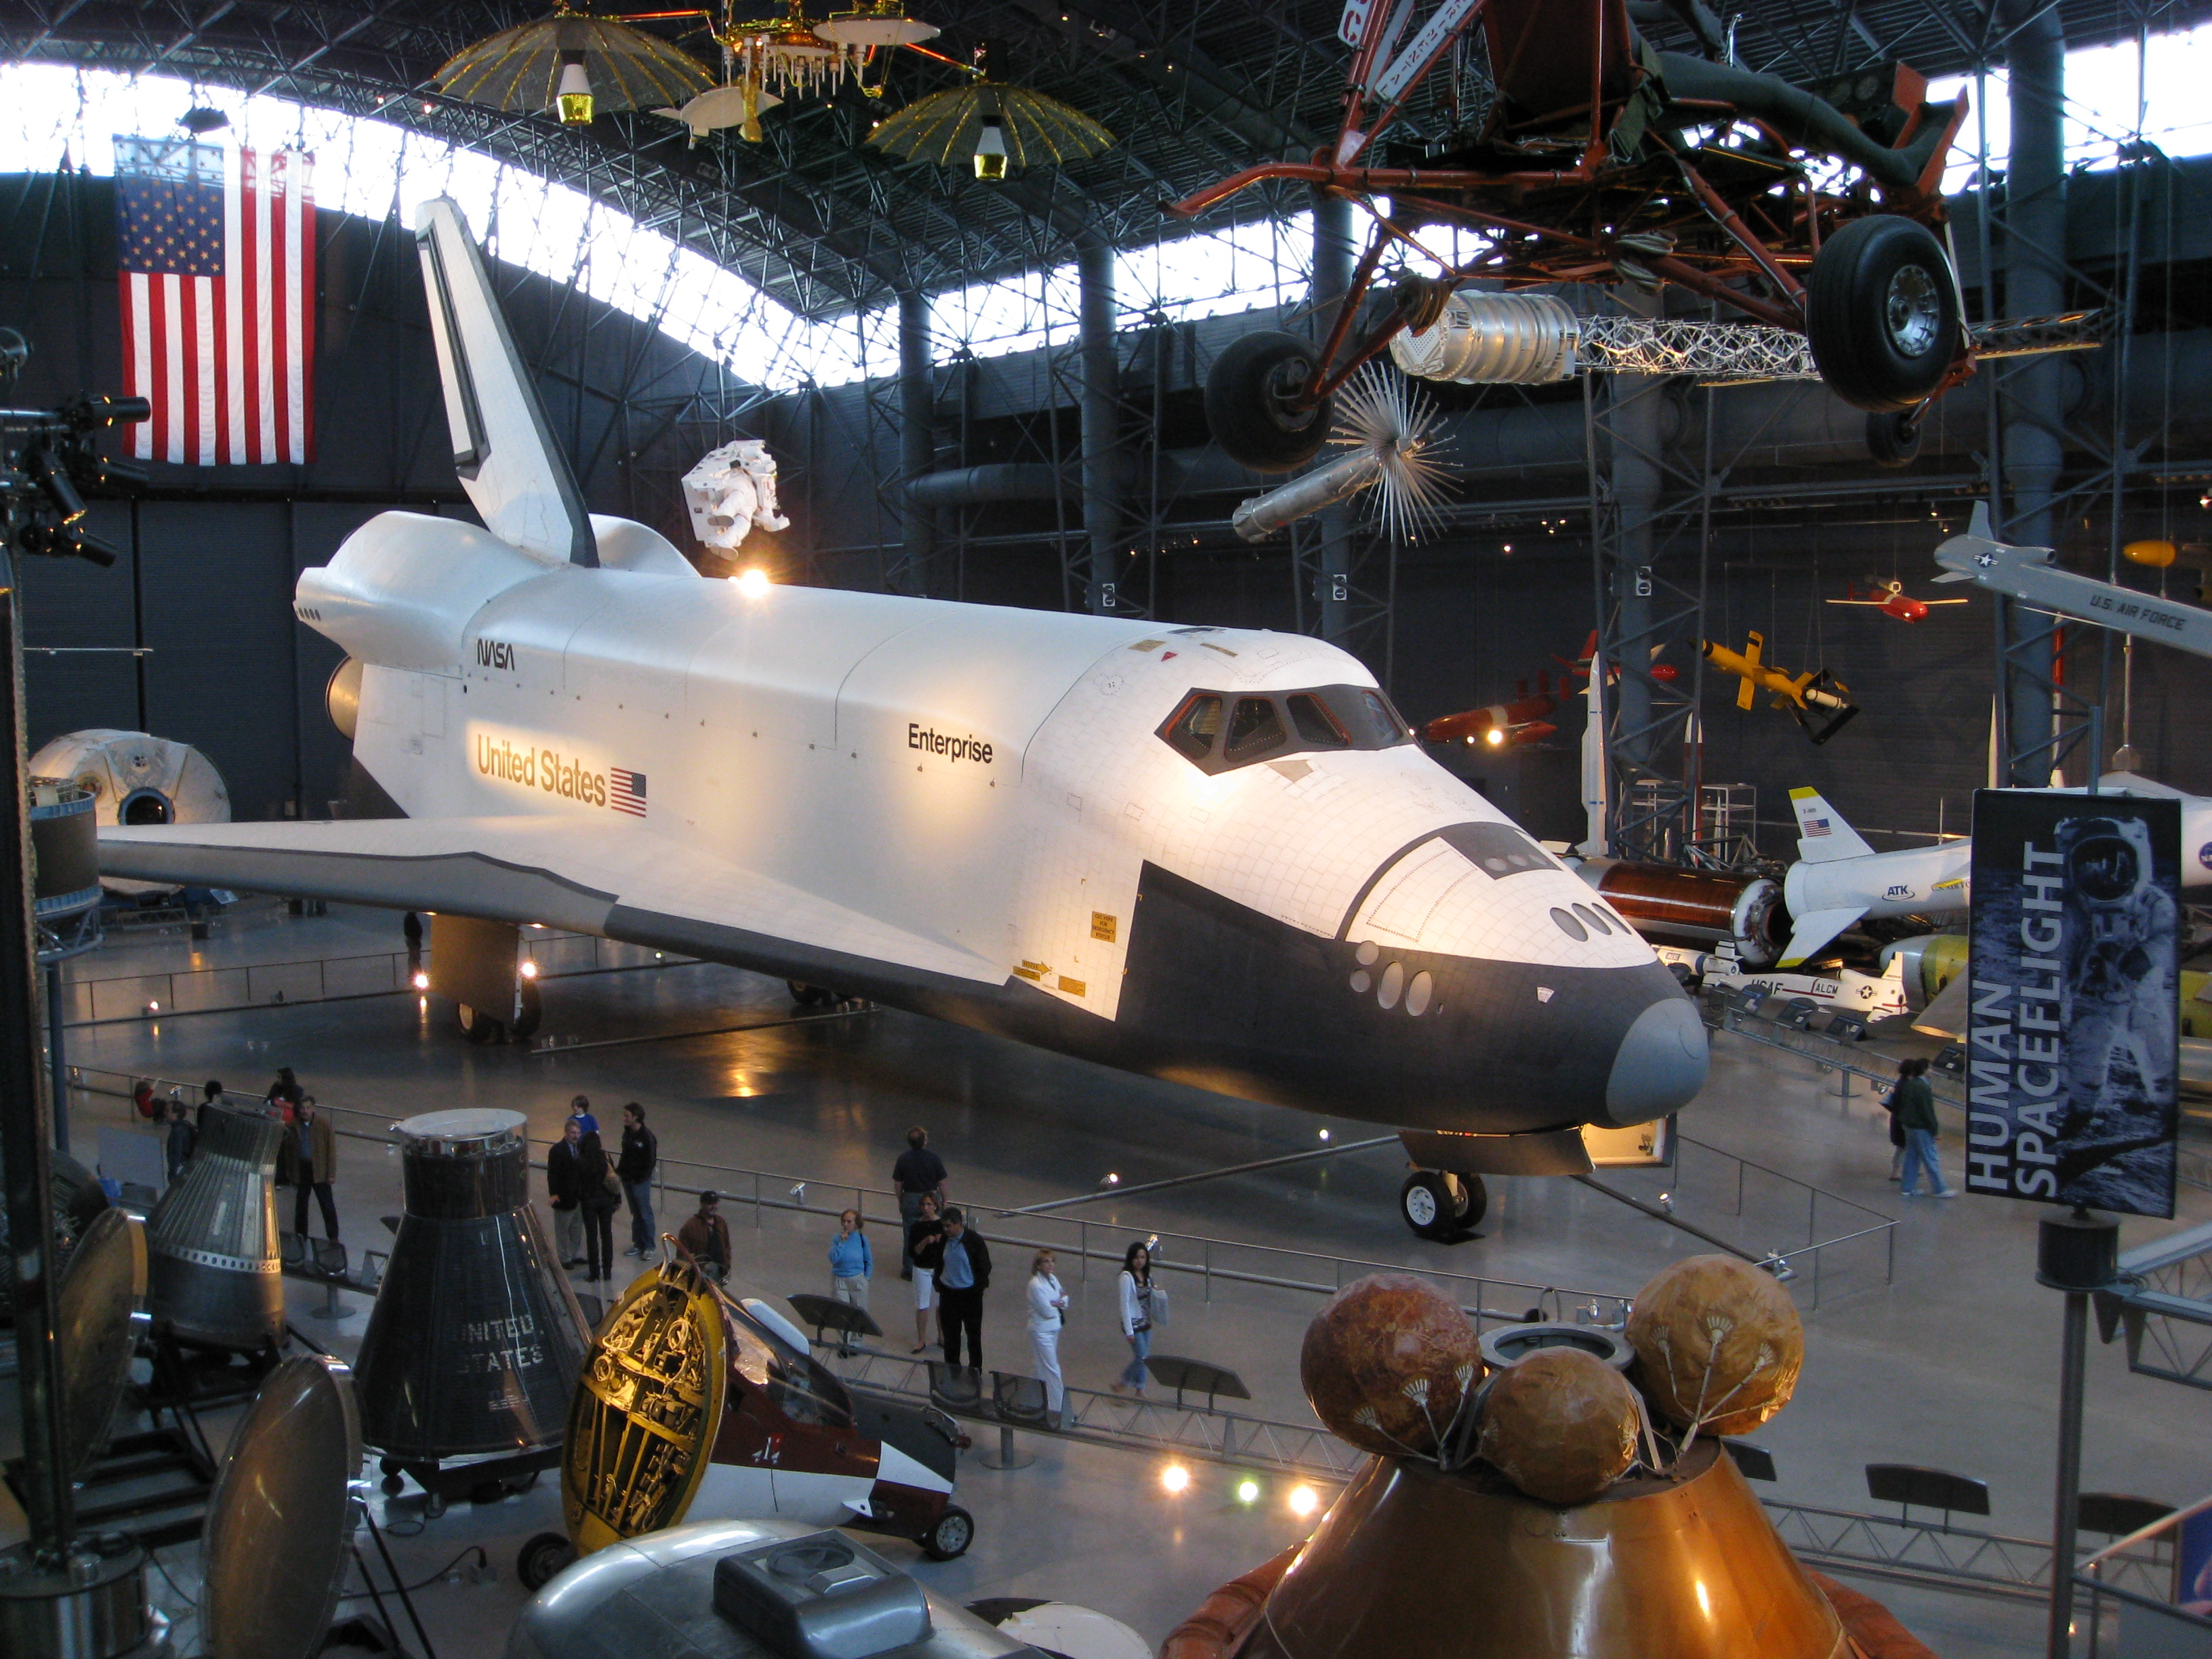 File:SpaceShuttle Enterprise.jpg - Wikimedia Commons